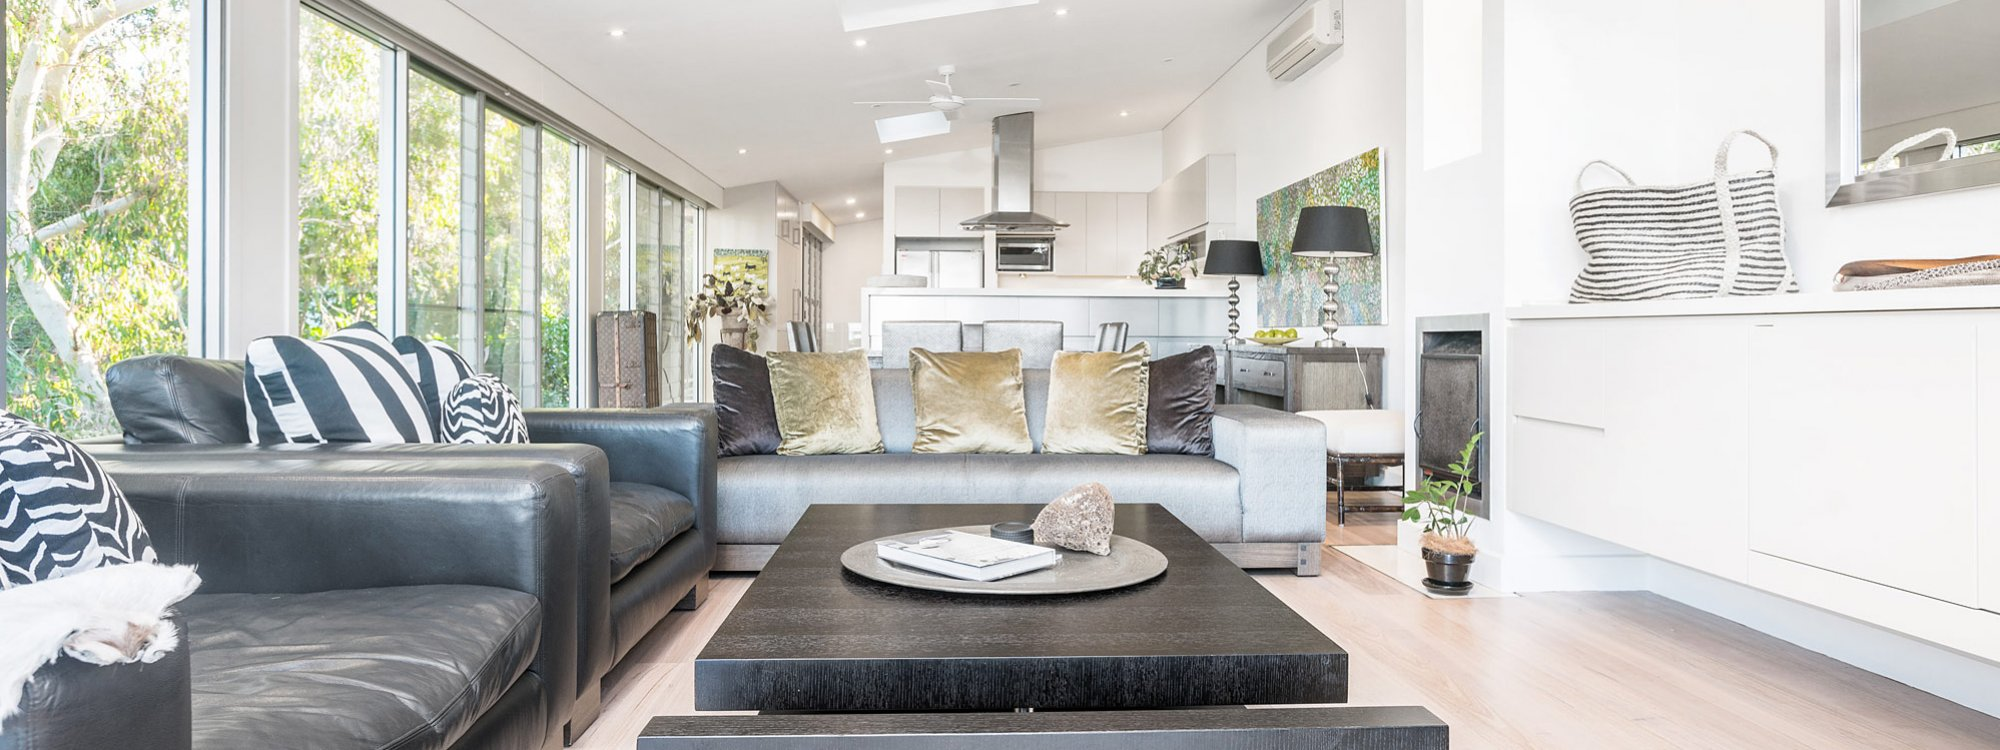 Vue From Here - Byron Bay - Living Area d